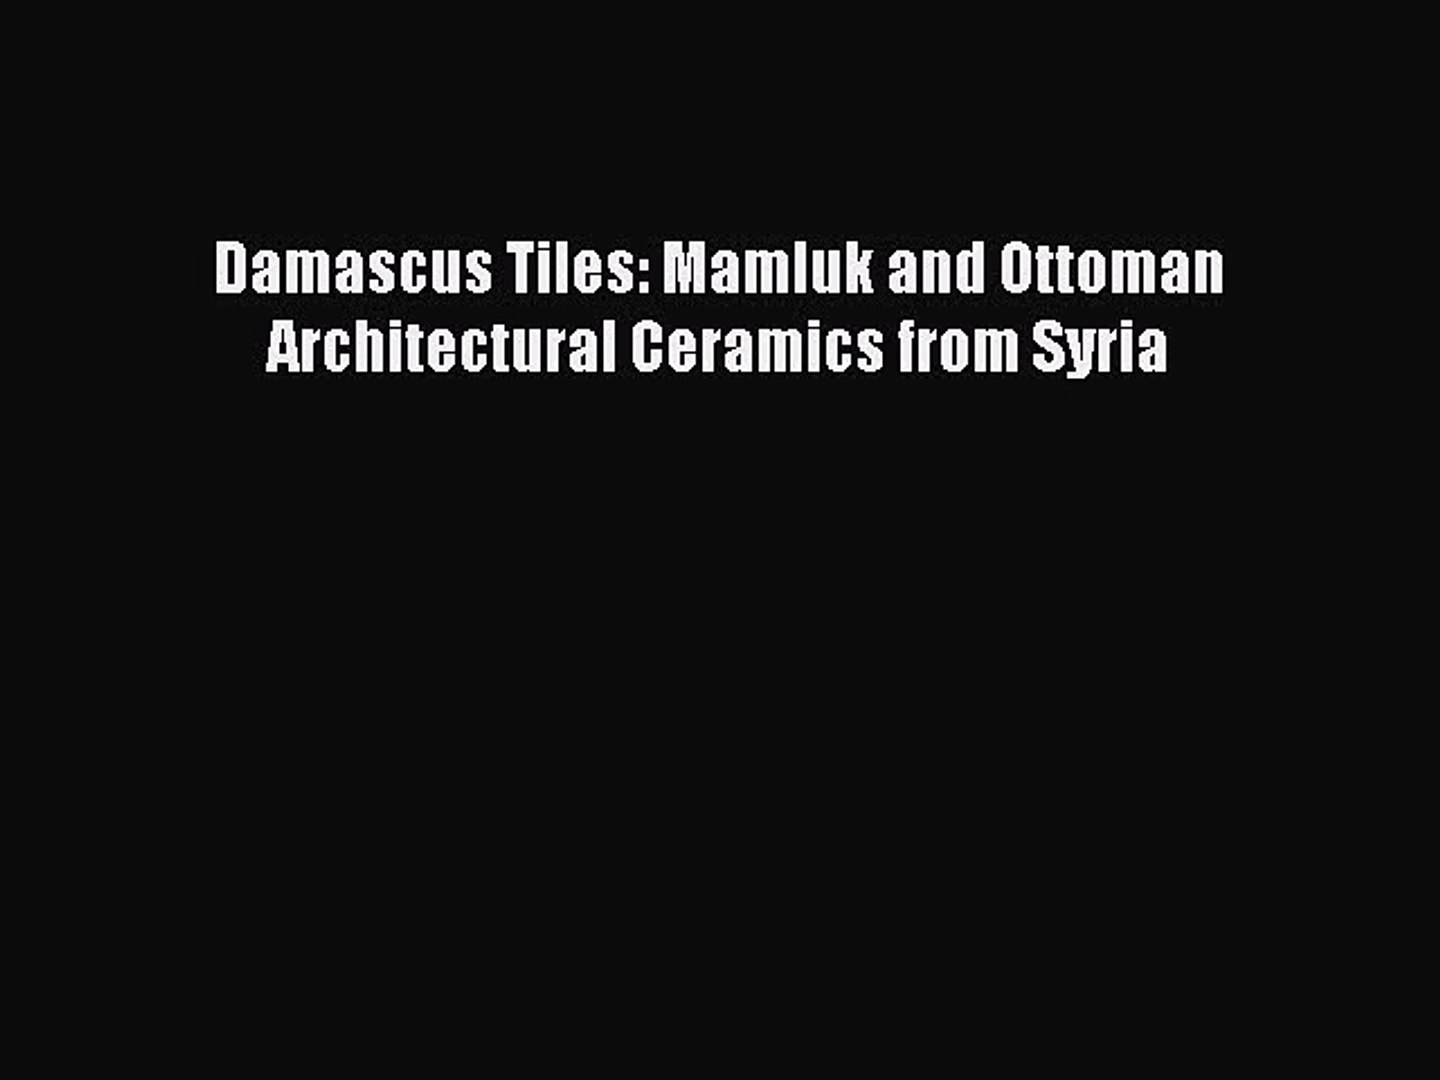 Damascus Tiles Mamluk and Ottoman Architectural Ceramics from Syria